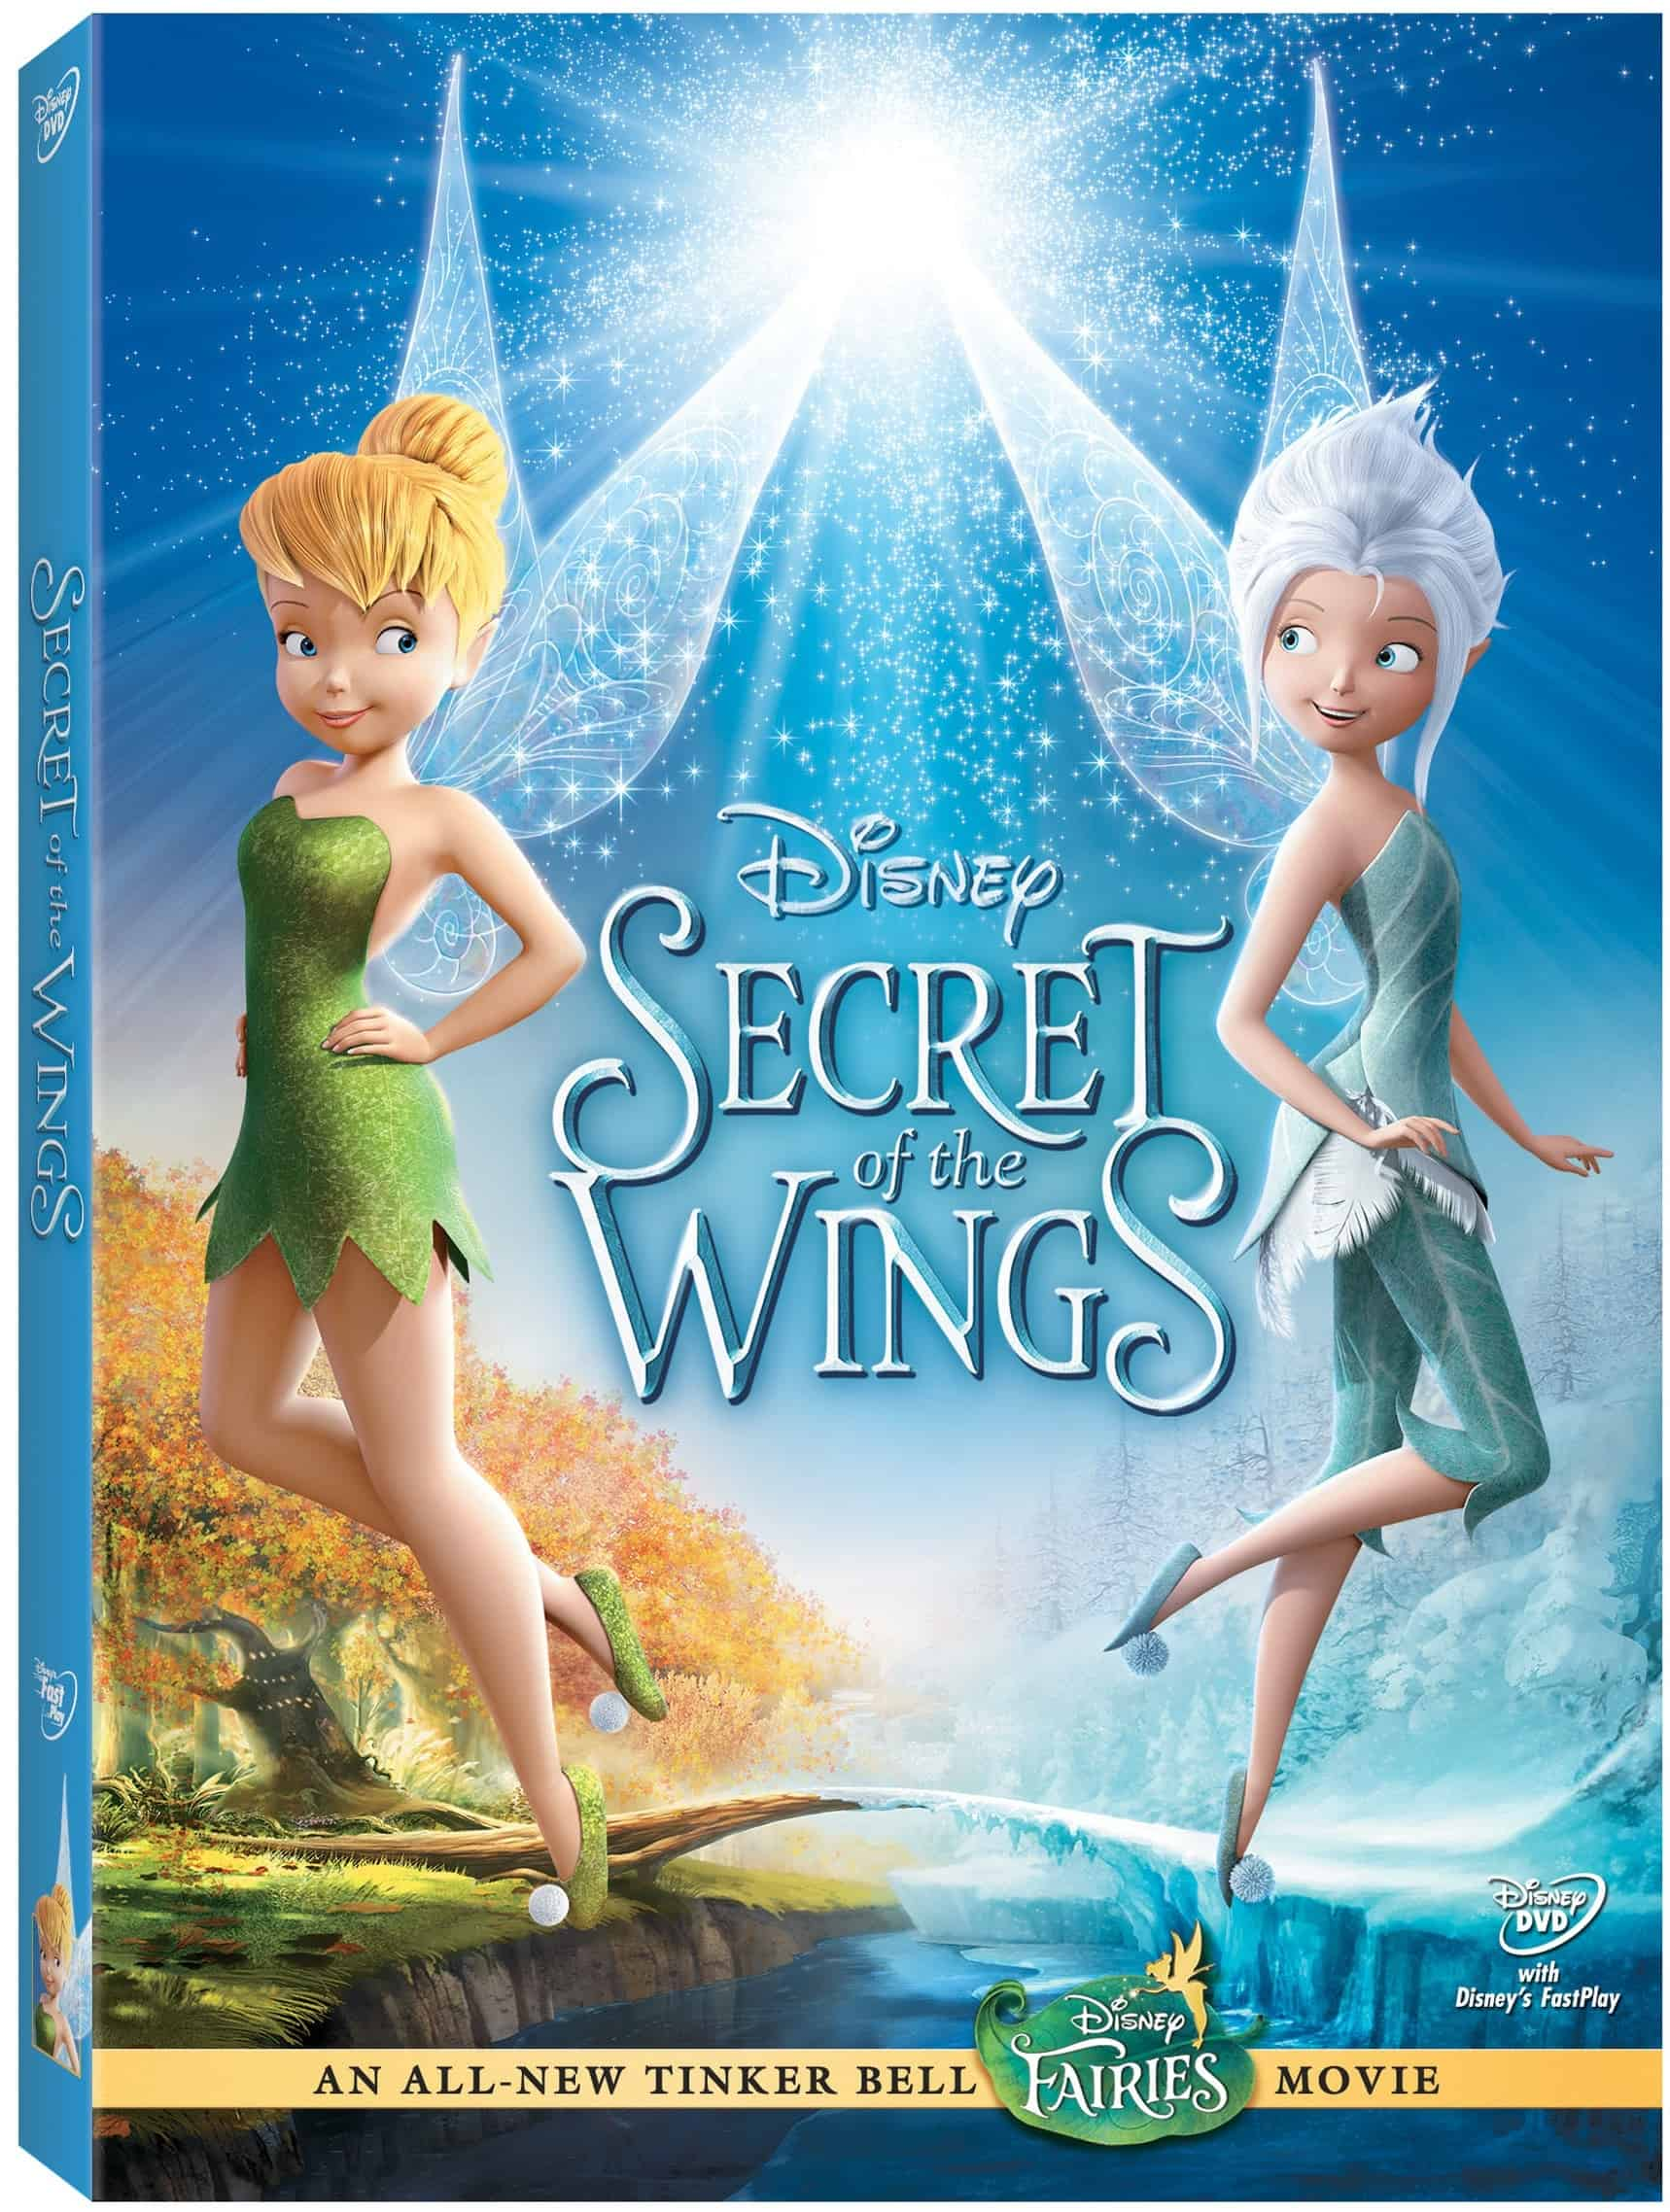 Disney's Secret of the Wings Brings Magical Messages Home